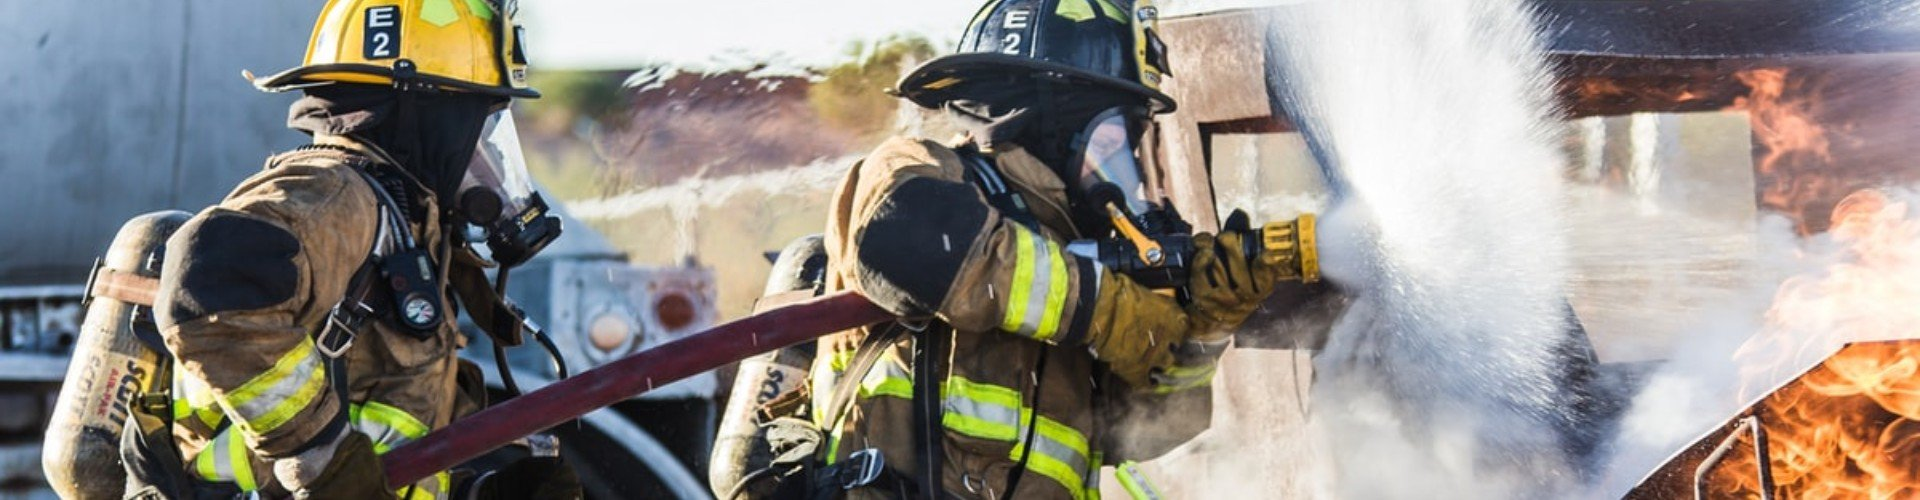 Firefighter Cover Letter Samples & Writing Guide